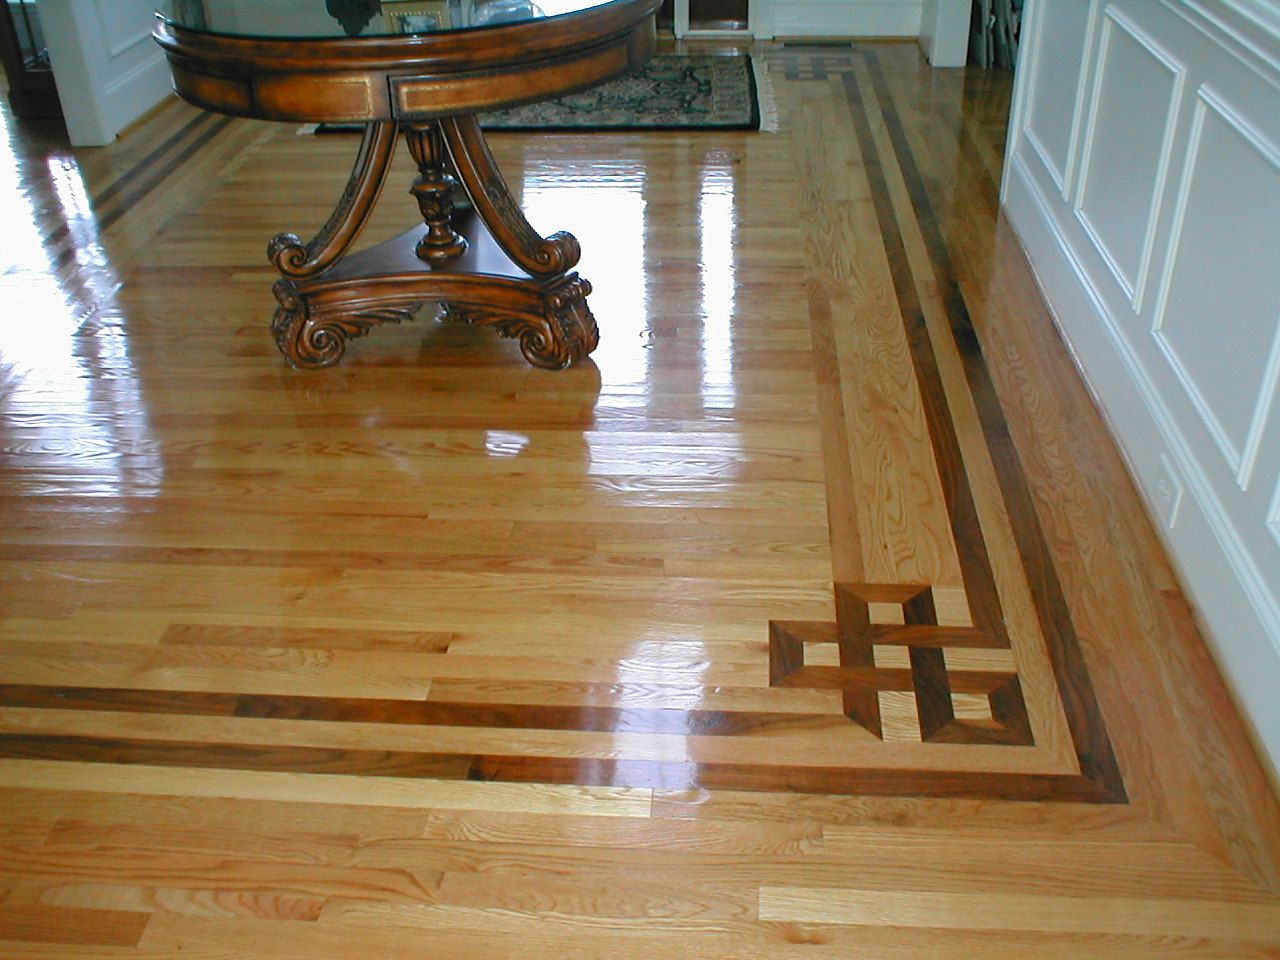 hardwood floor refinishing cherry hill nj of i love the illusion of depth created by this border you can tell regarding i love the illusion of depth created by this border you can tell the installers took care to contrast shades of the border material to keep it from all